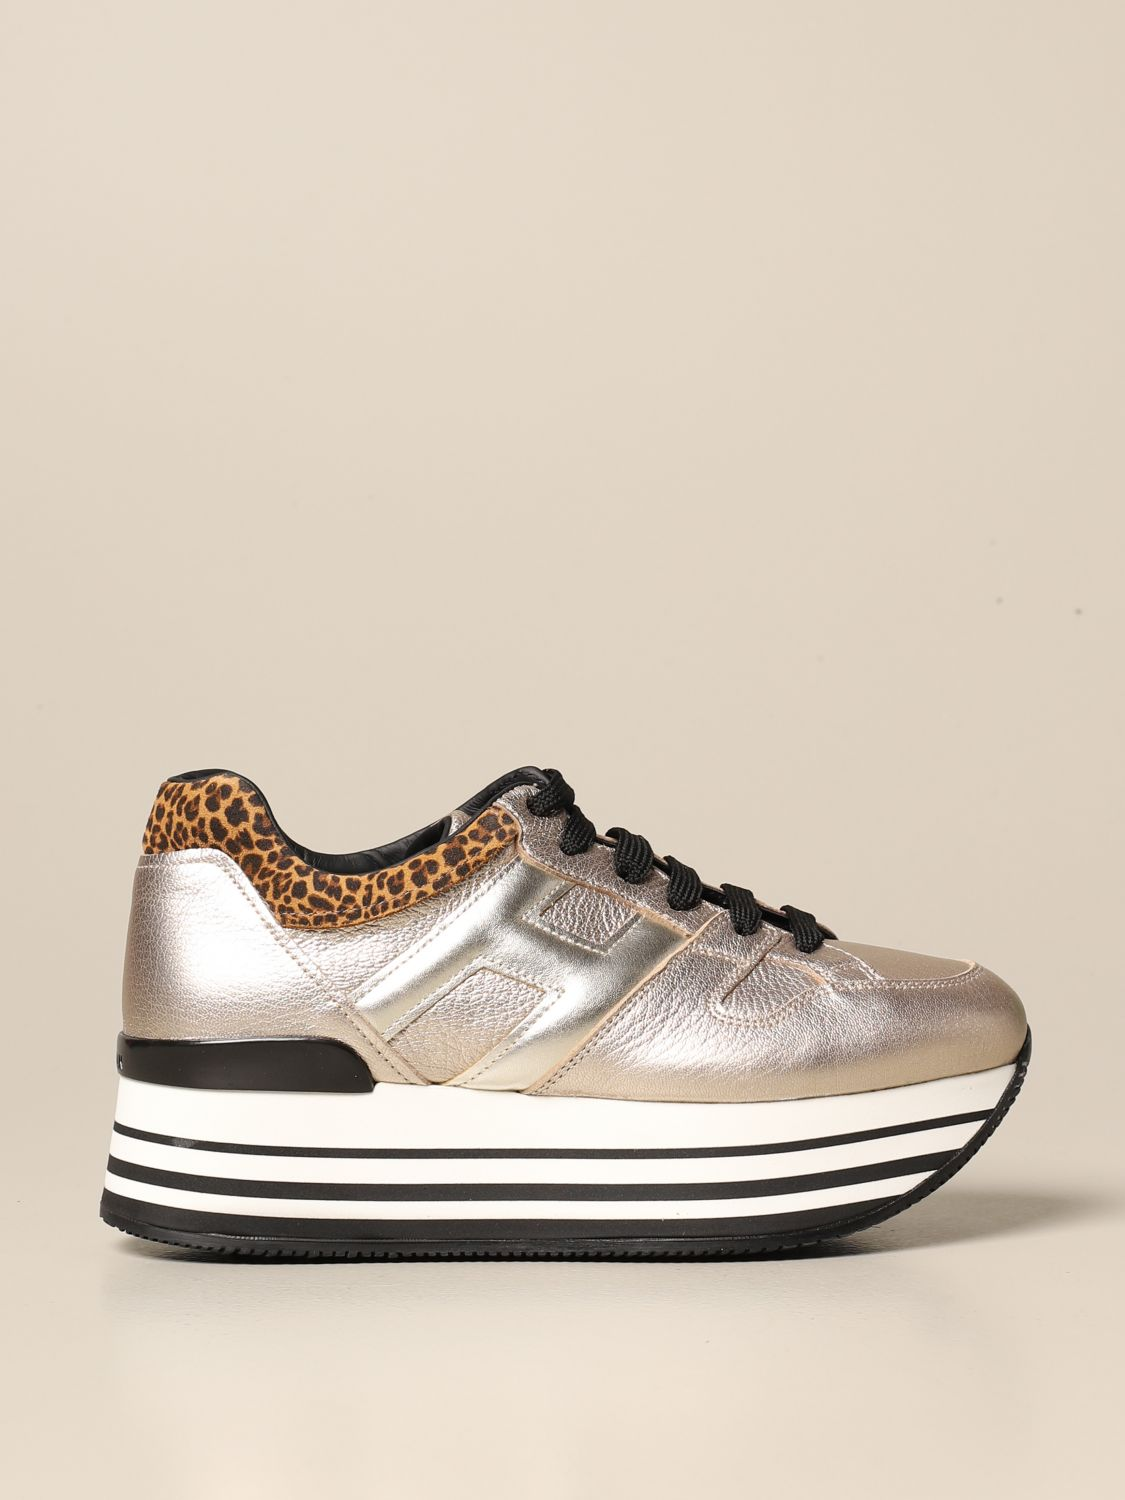 H283 maxi Hogan sneakers in laminated leather with animalier ankle